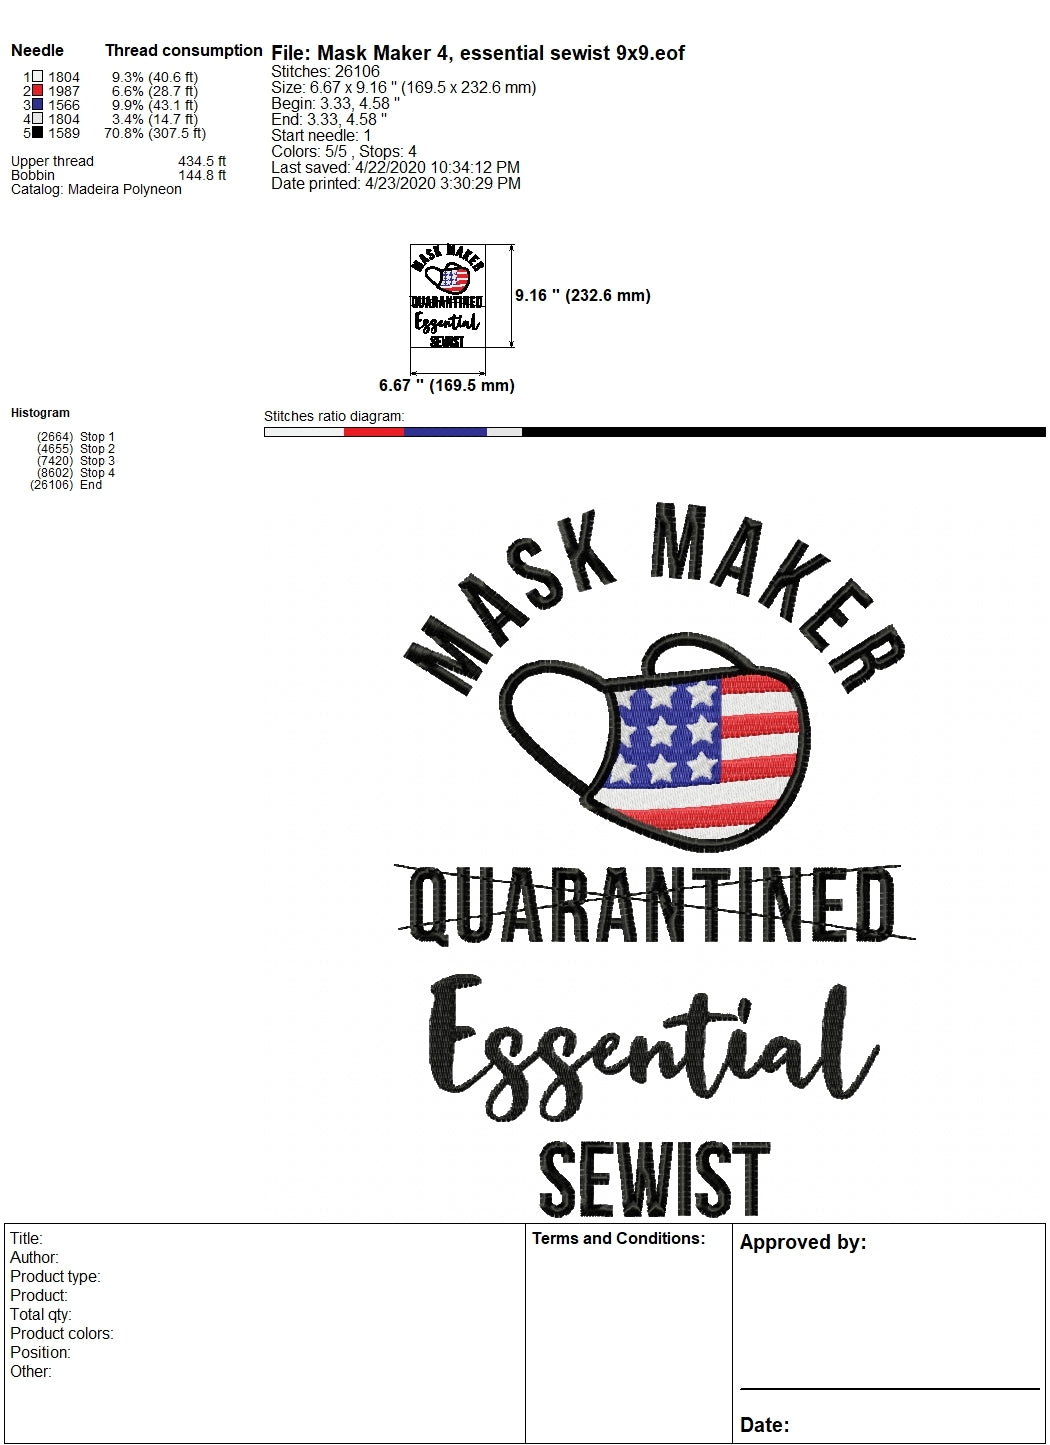 Mask Maker Embroidery Designs, Sewist Embroidery Pattern